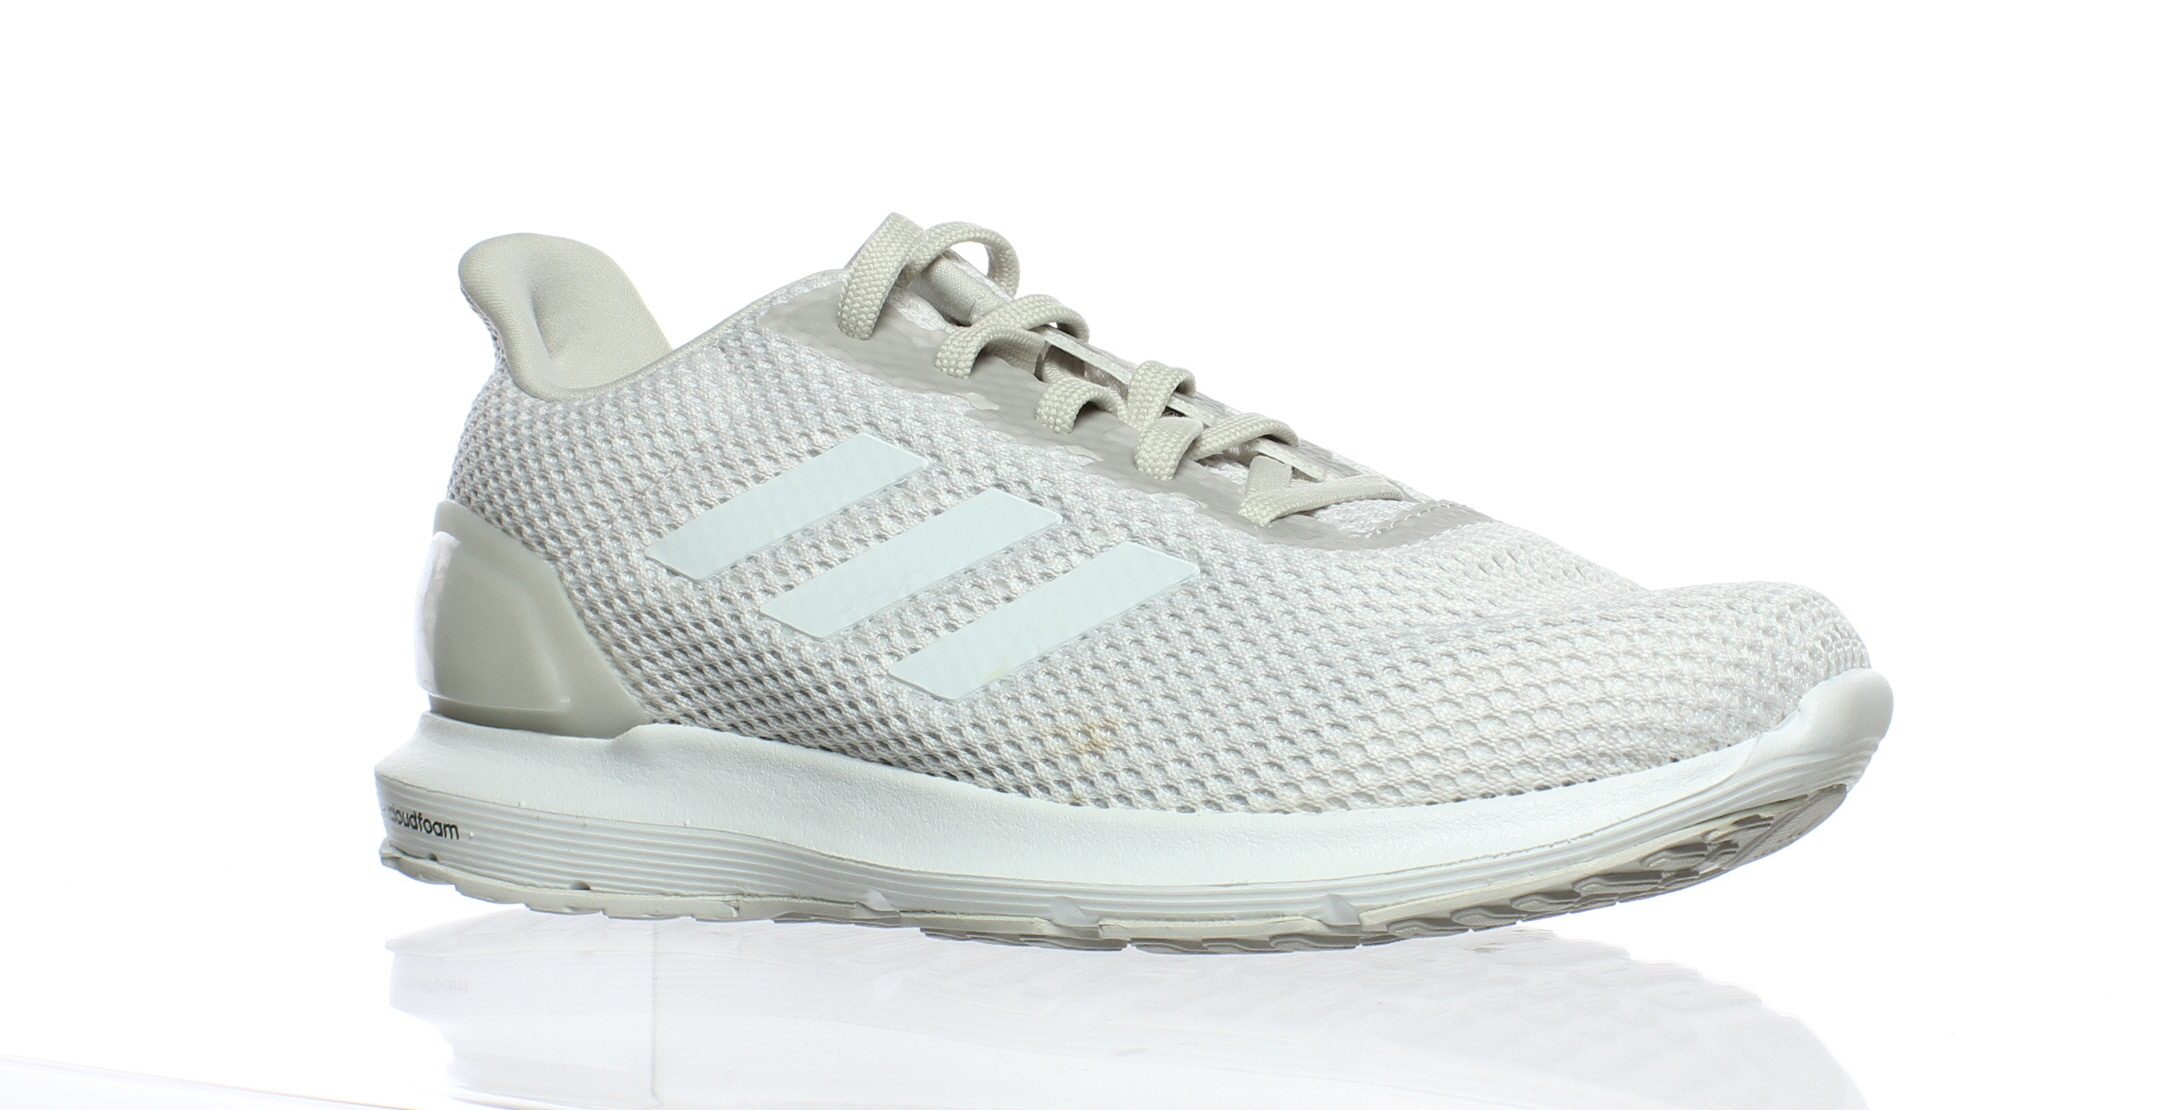 huge selection of 30264 5c7e9 Adidas Womens Cosmic 2 Beige Running Shoes Size 6.5 (36437)